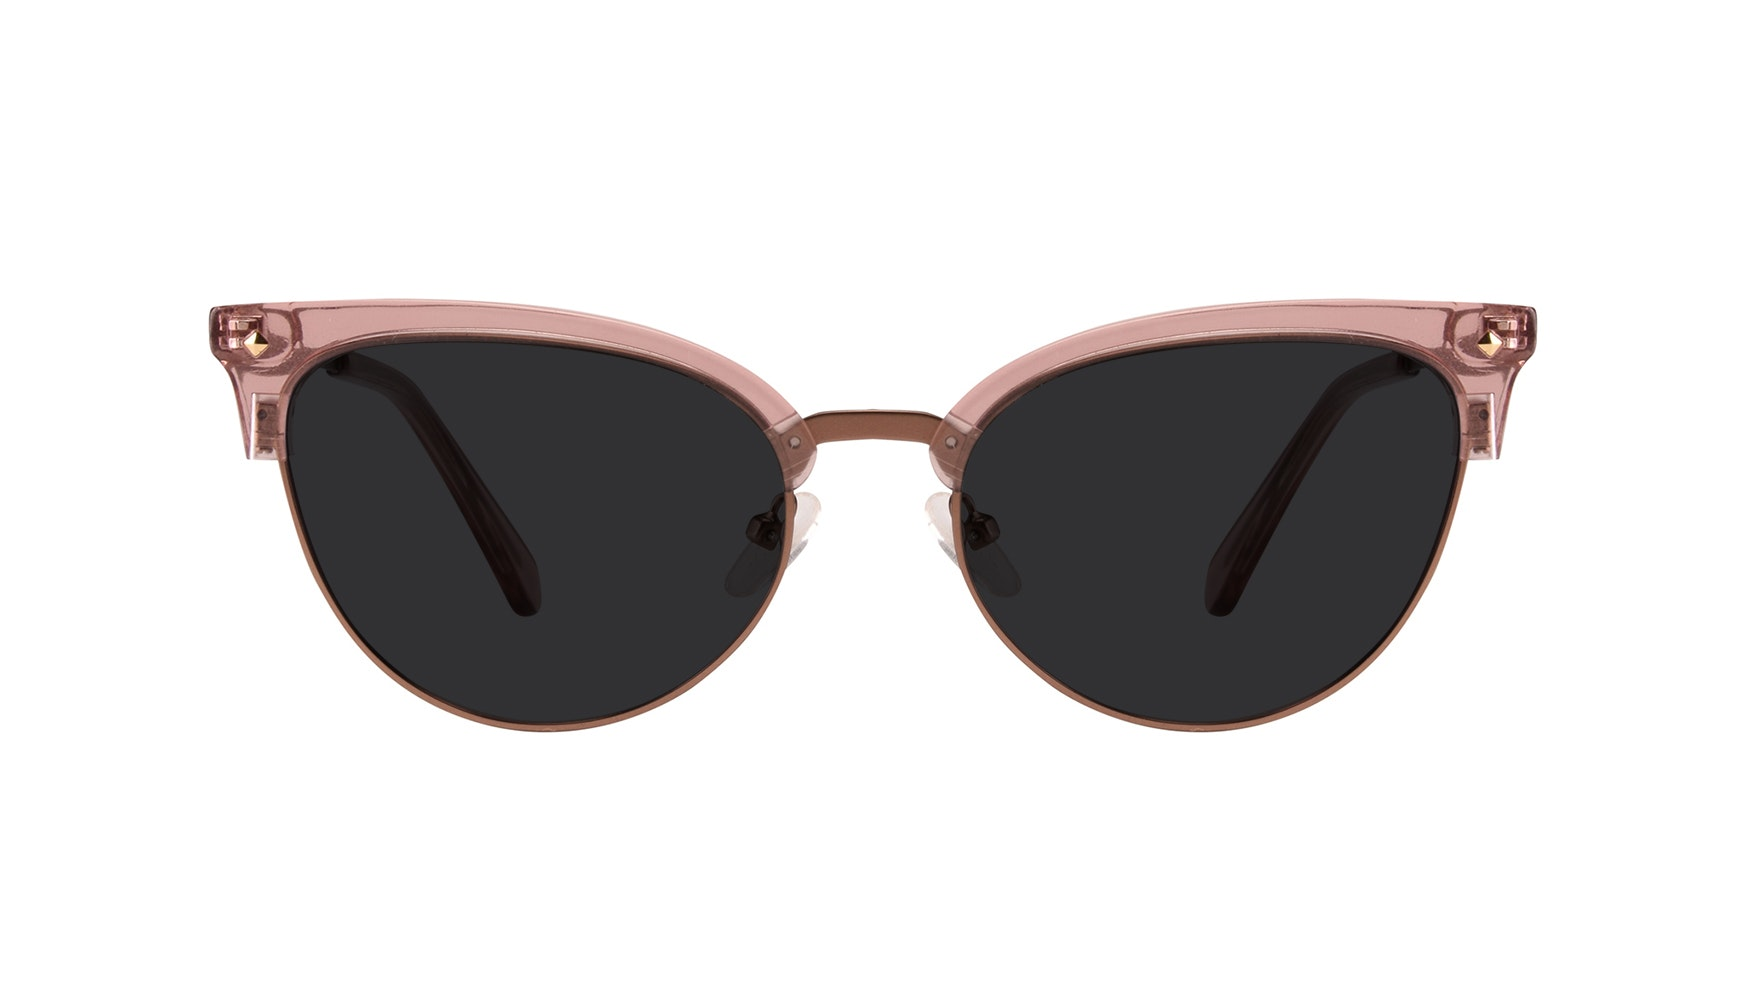 Affordable Fashion Glasses Cat Eye Daring Cateye Sunglasses Women Moon Rose Front